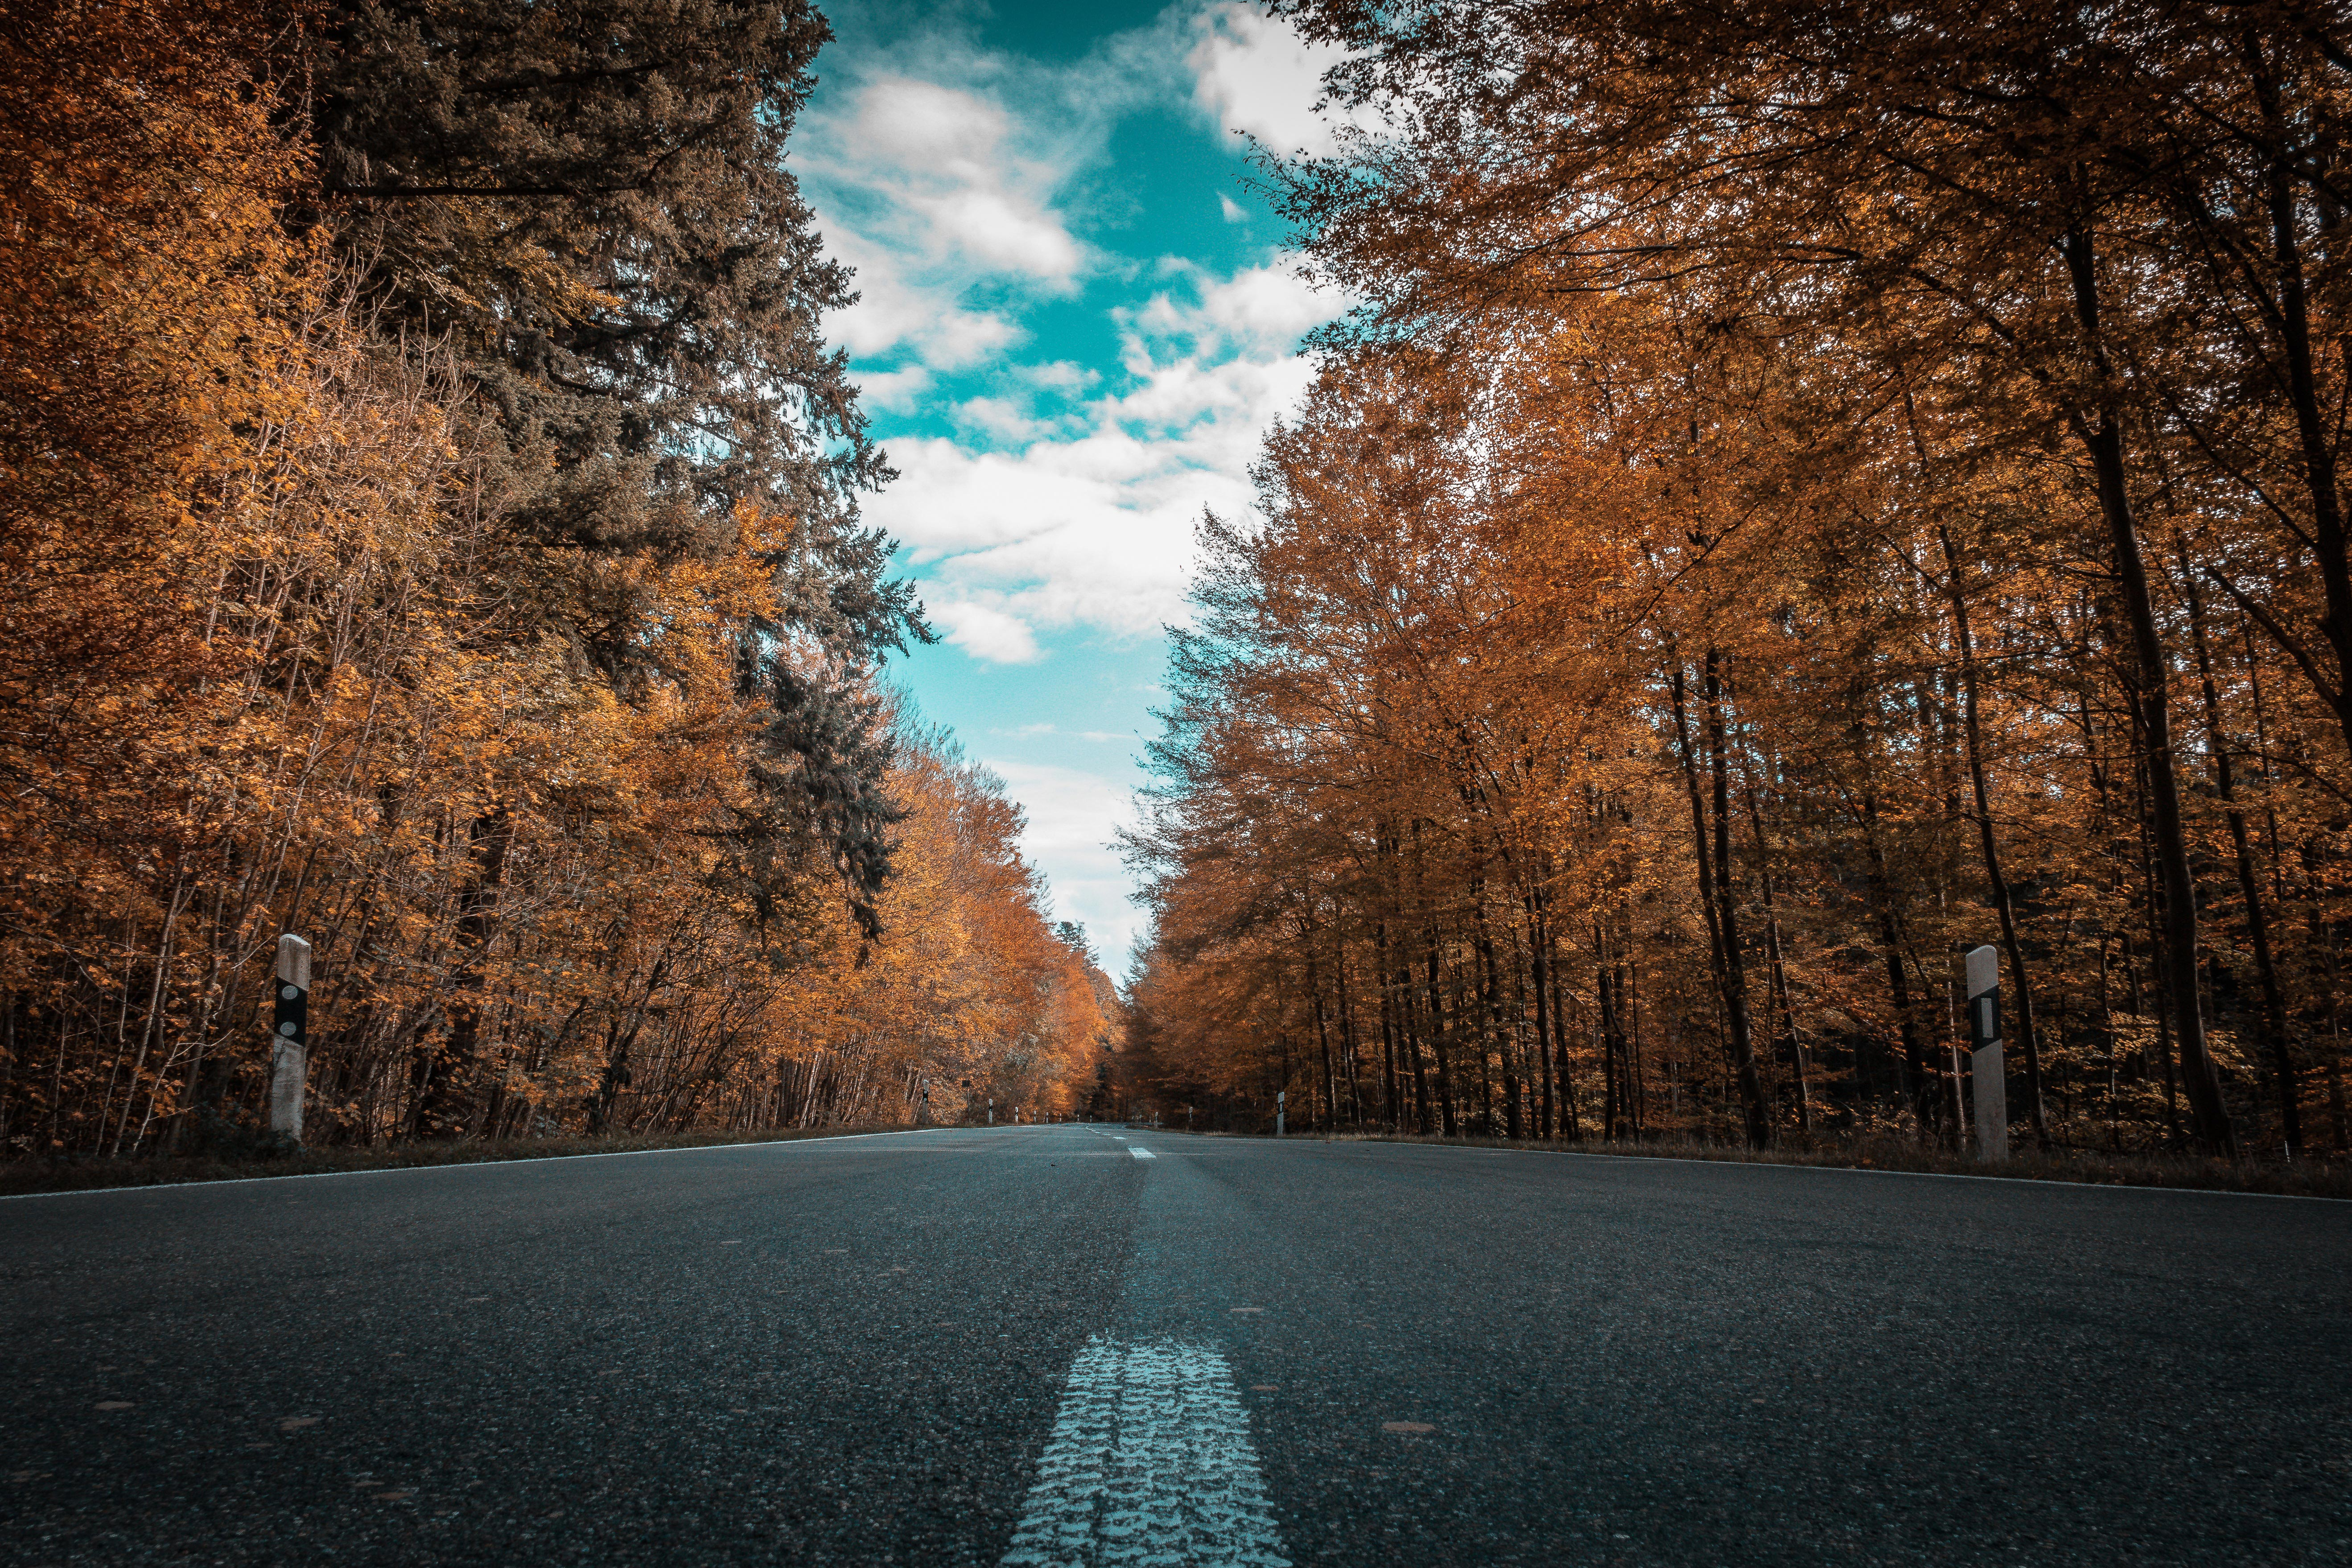 Alone Road Forest Autumn Golden Trees Ultra 4k Hd Nature